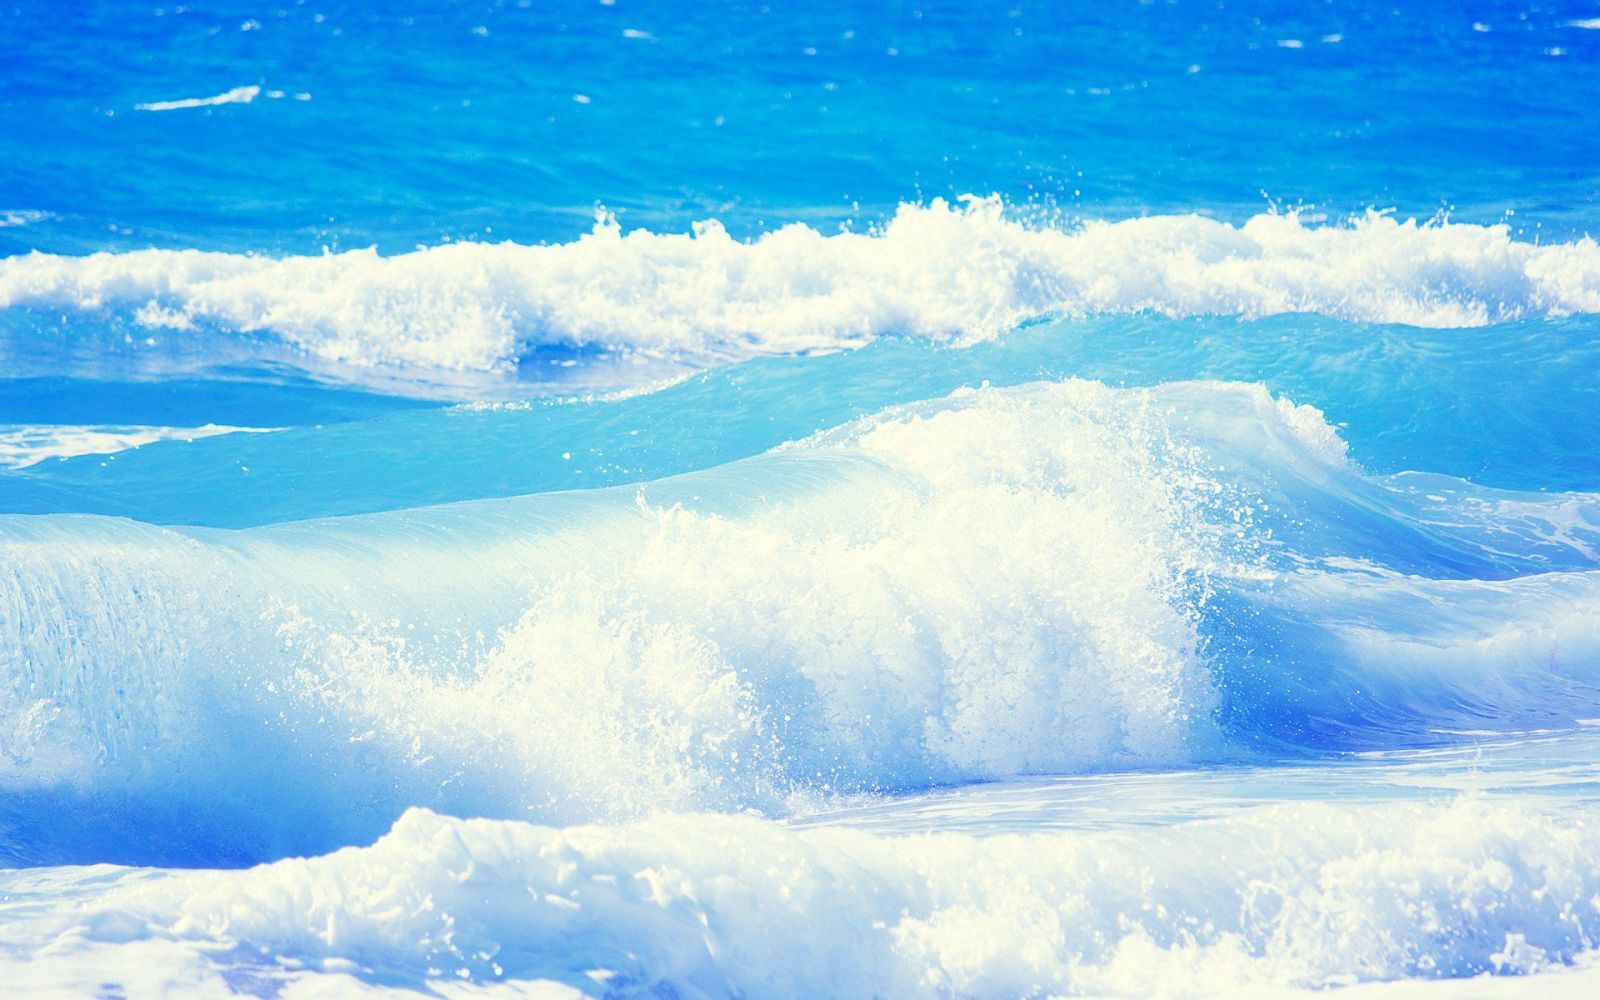 Sea water freshness hd wallpapers Only hd wallpapers 1600x1000